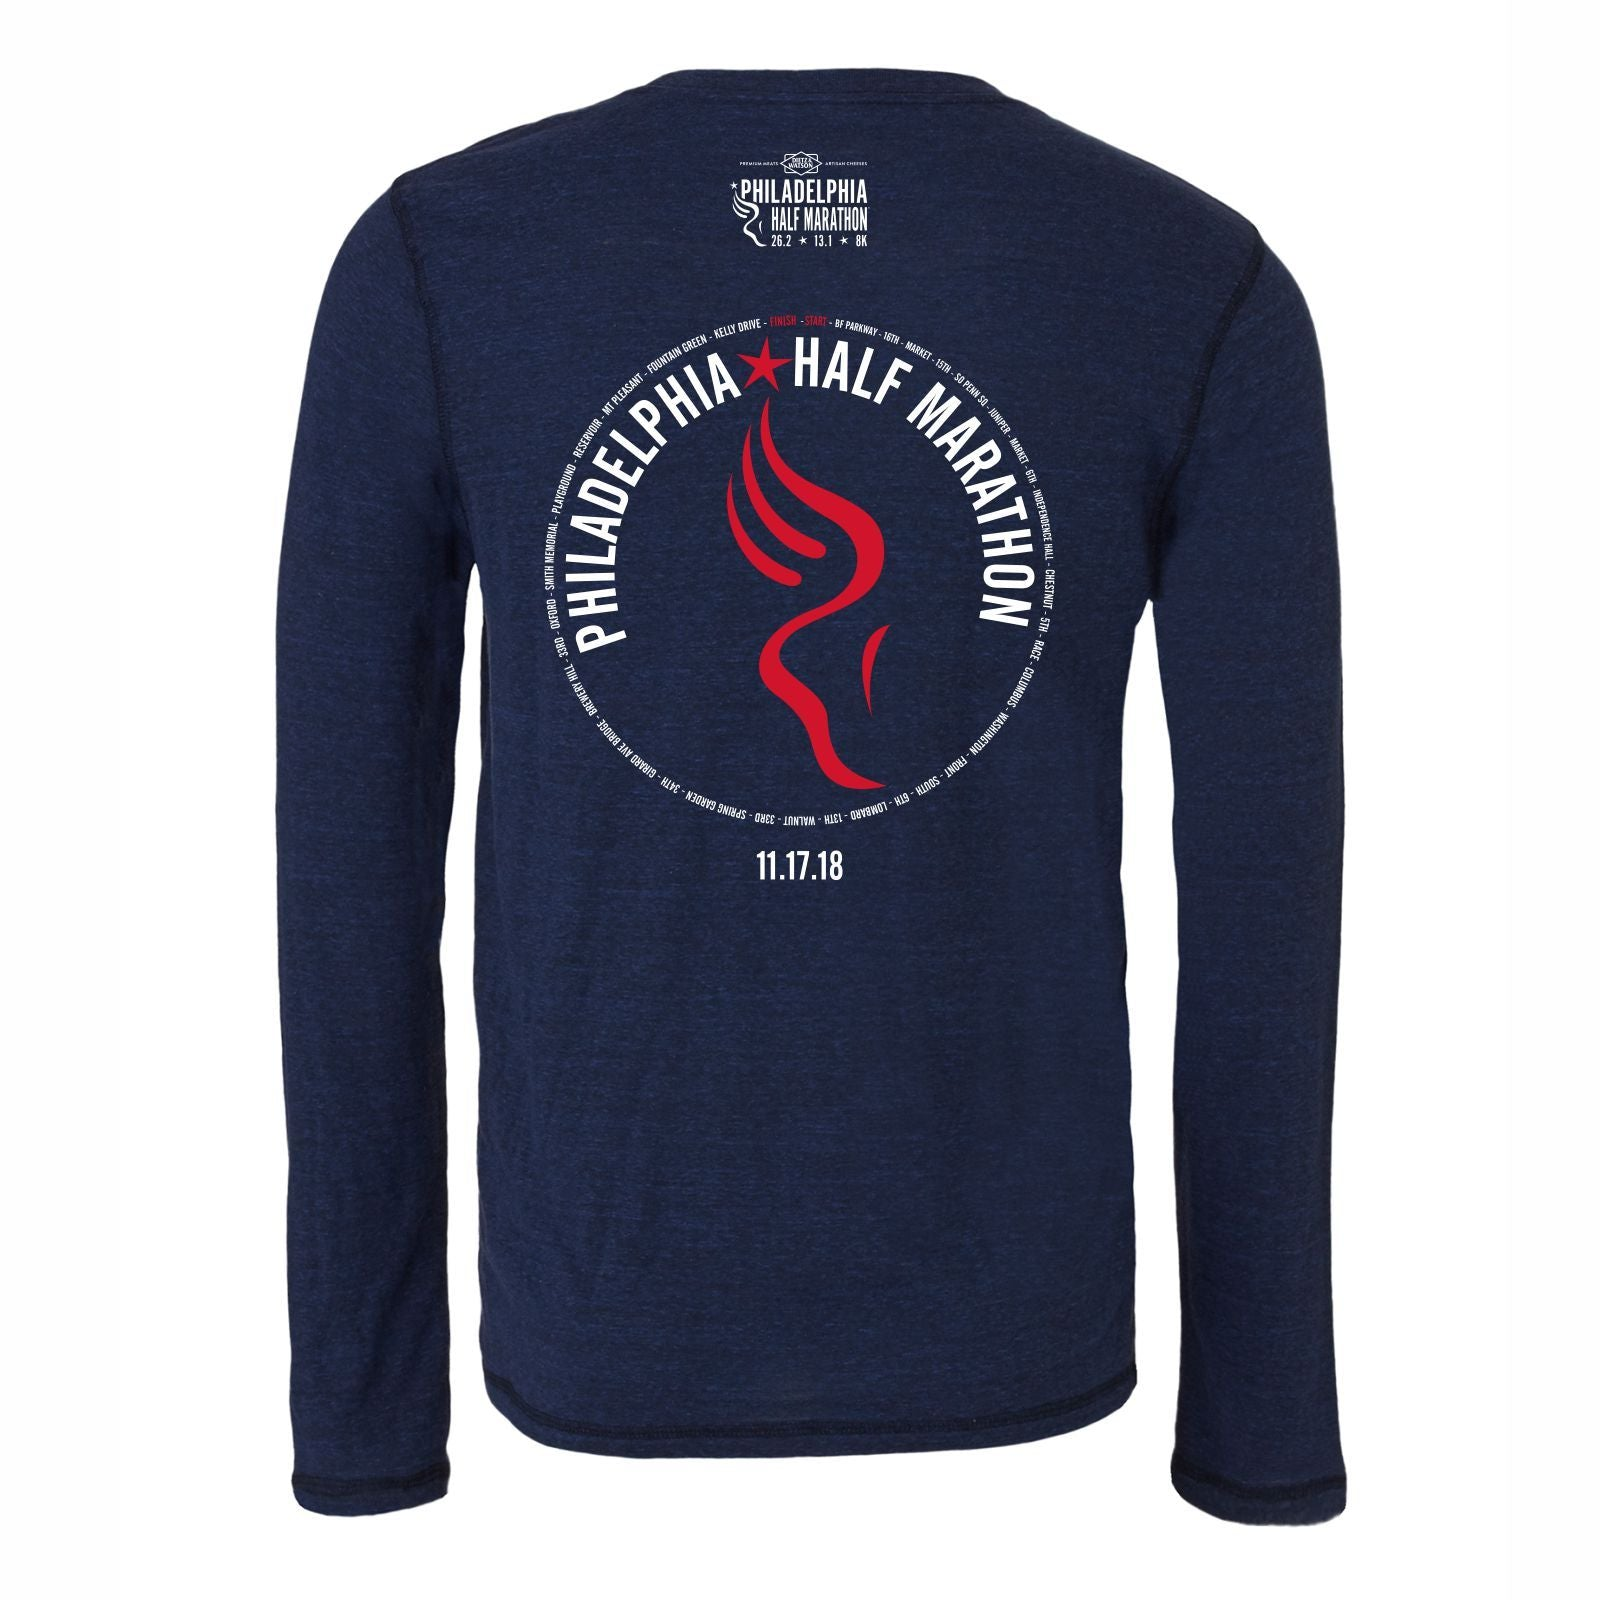 Dietz & Watson Philadelphia Half Marathon 'Directions 13.1' Men's LS Tri-Blend Tee - Navy Heather Triblend